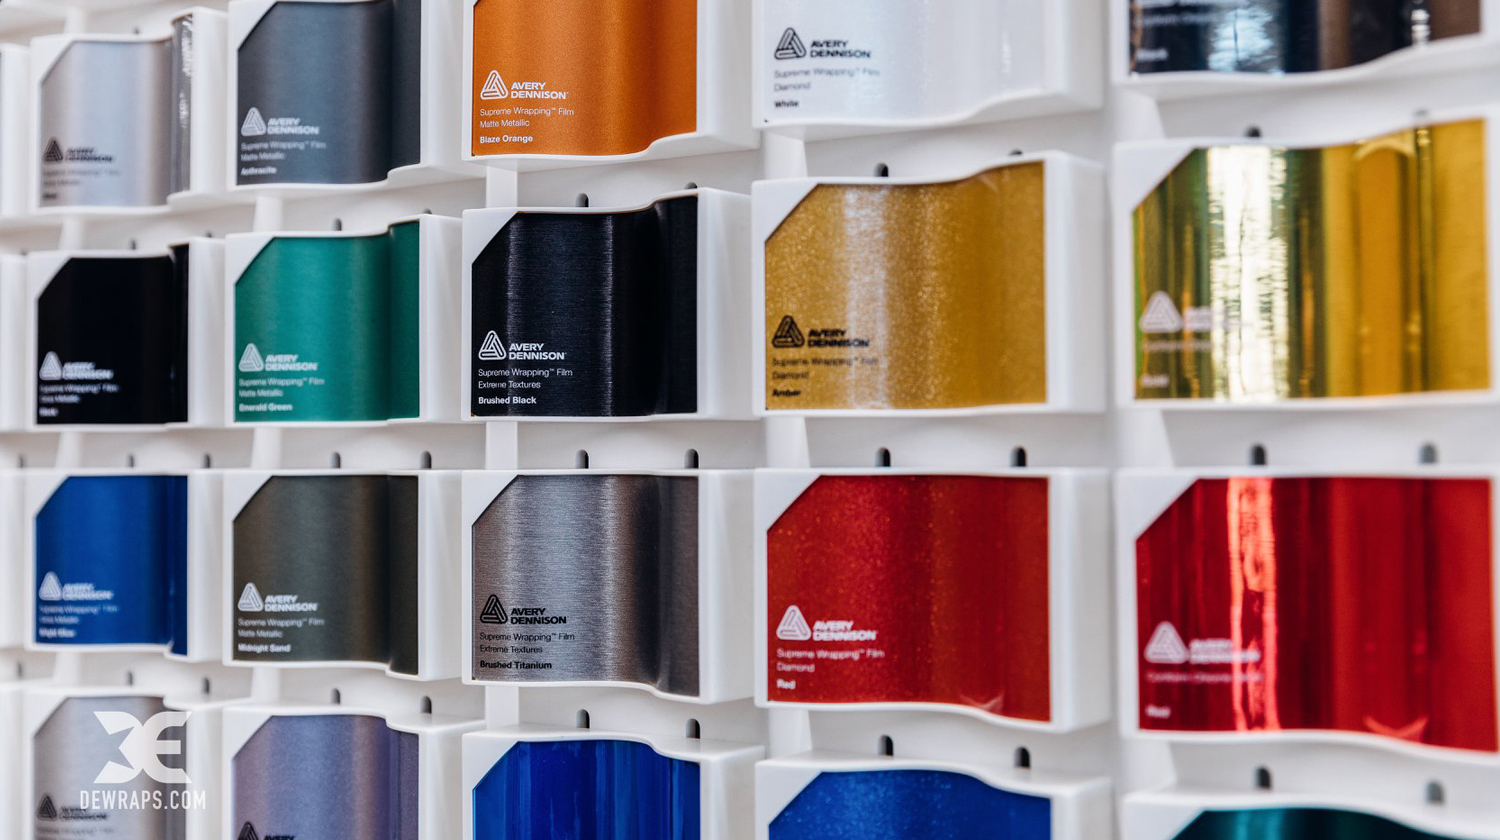 AVERY DENNISON WRAP COLOR CHANGE DISPLAY.jpg